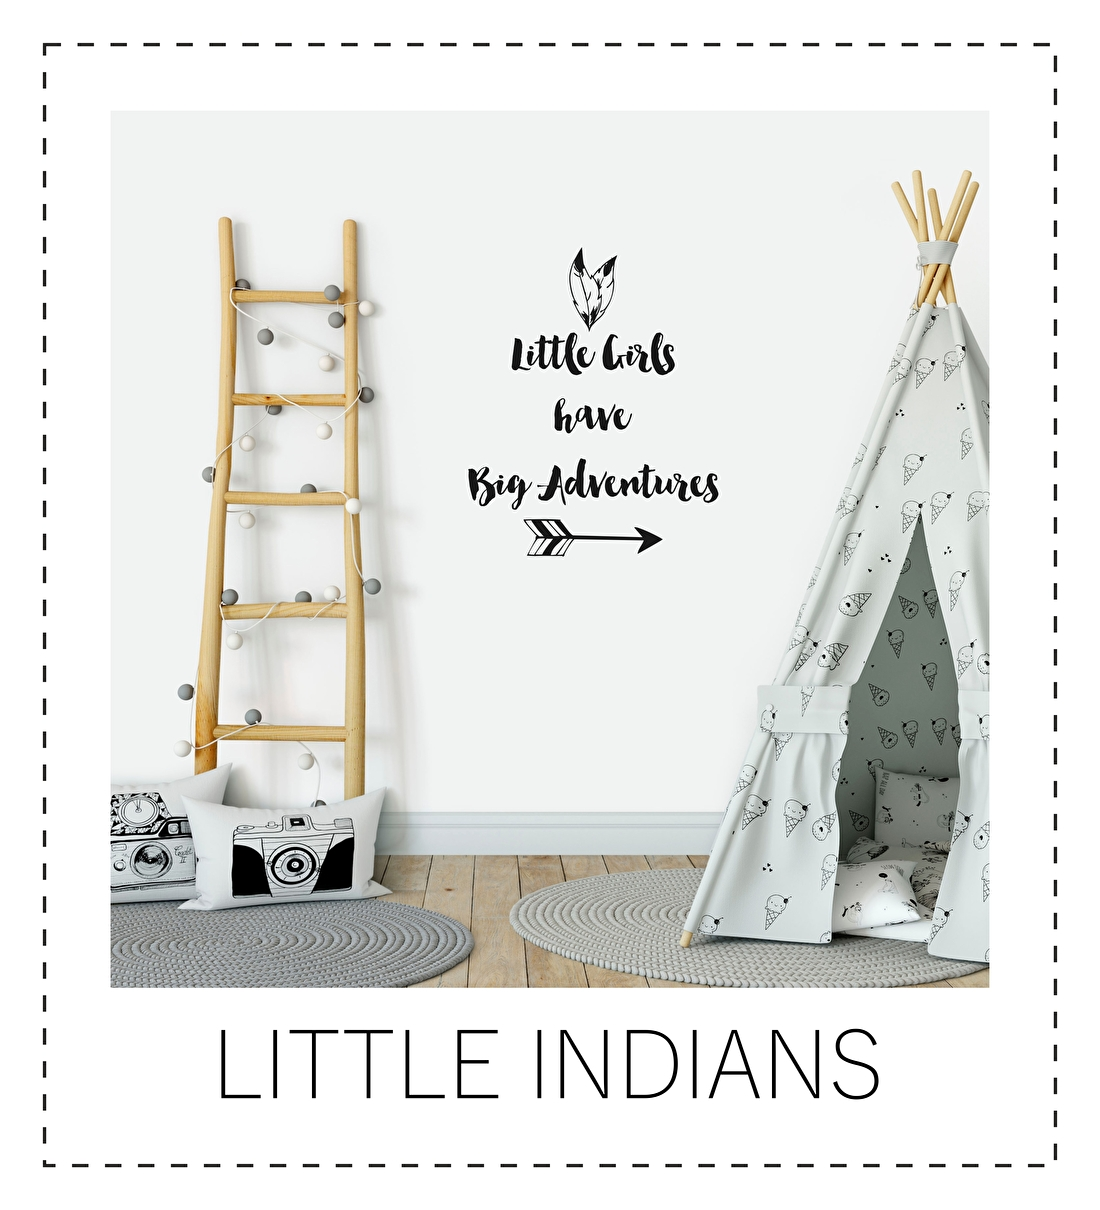 https://www.ilse-stickerdesign.nl/c-3616303/little-indians/